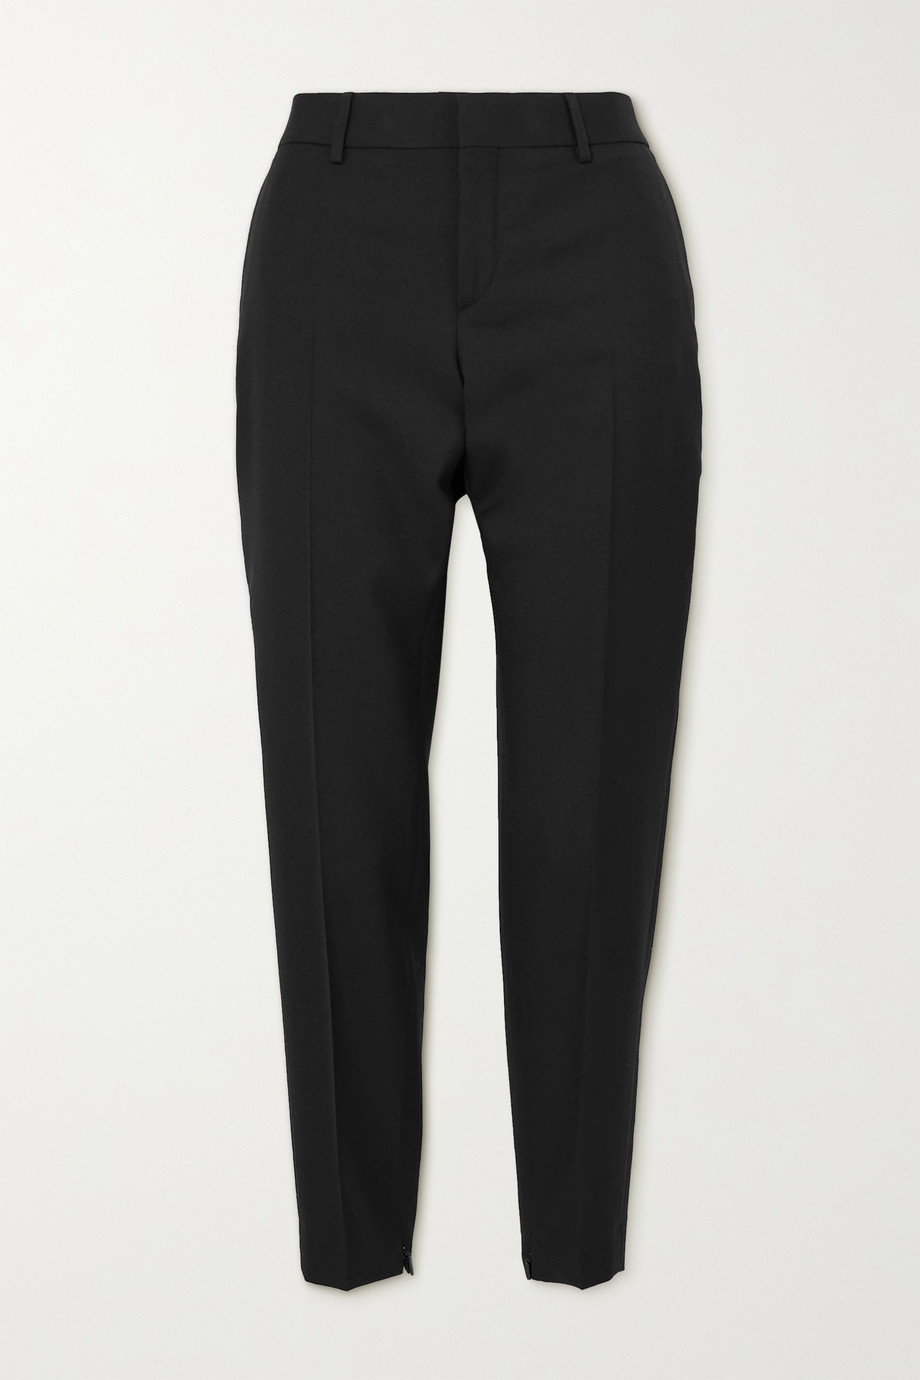 SAINT LAURENT Wool slim-leg pants